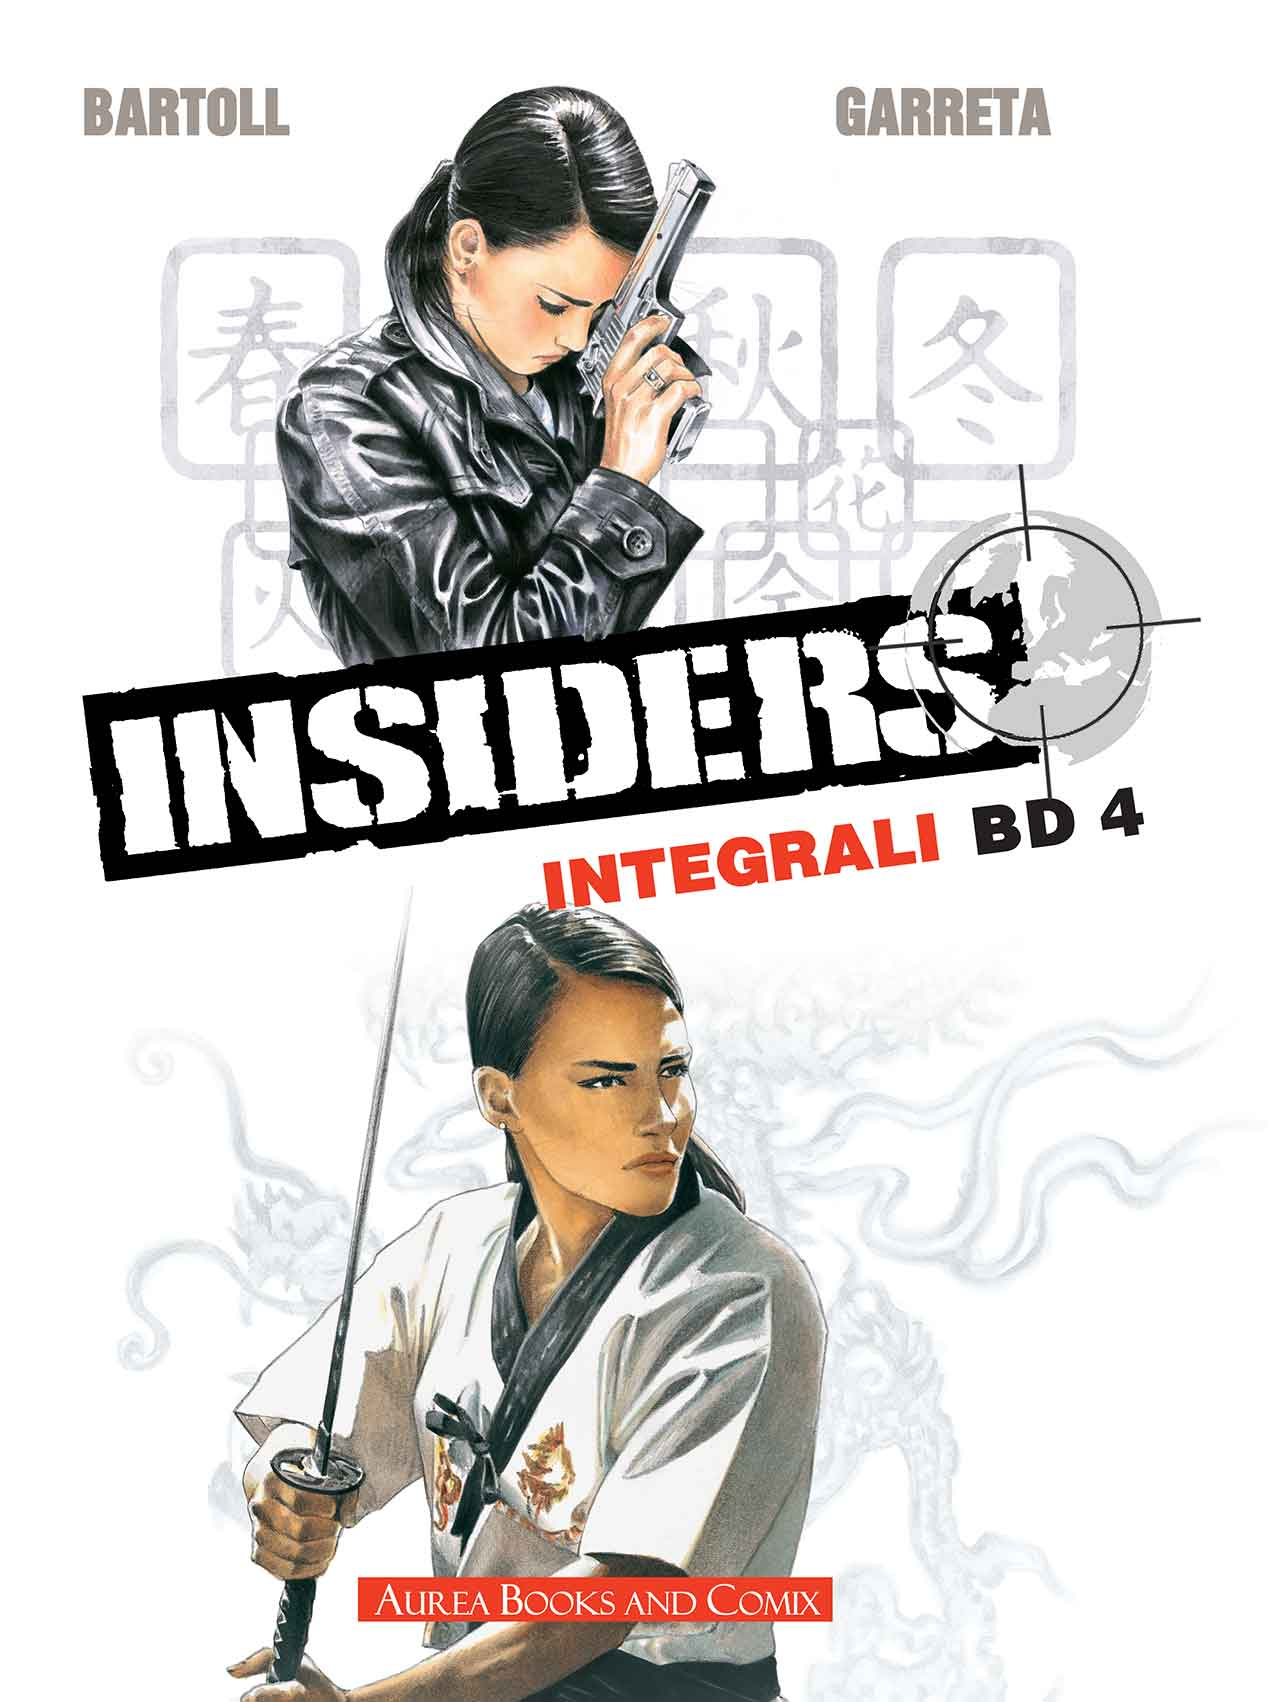 Integrali BD Insiders 4